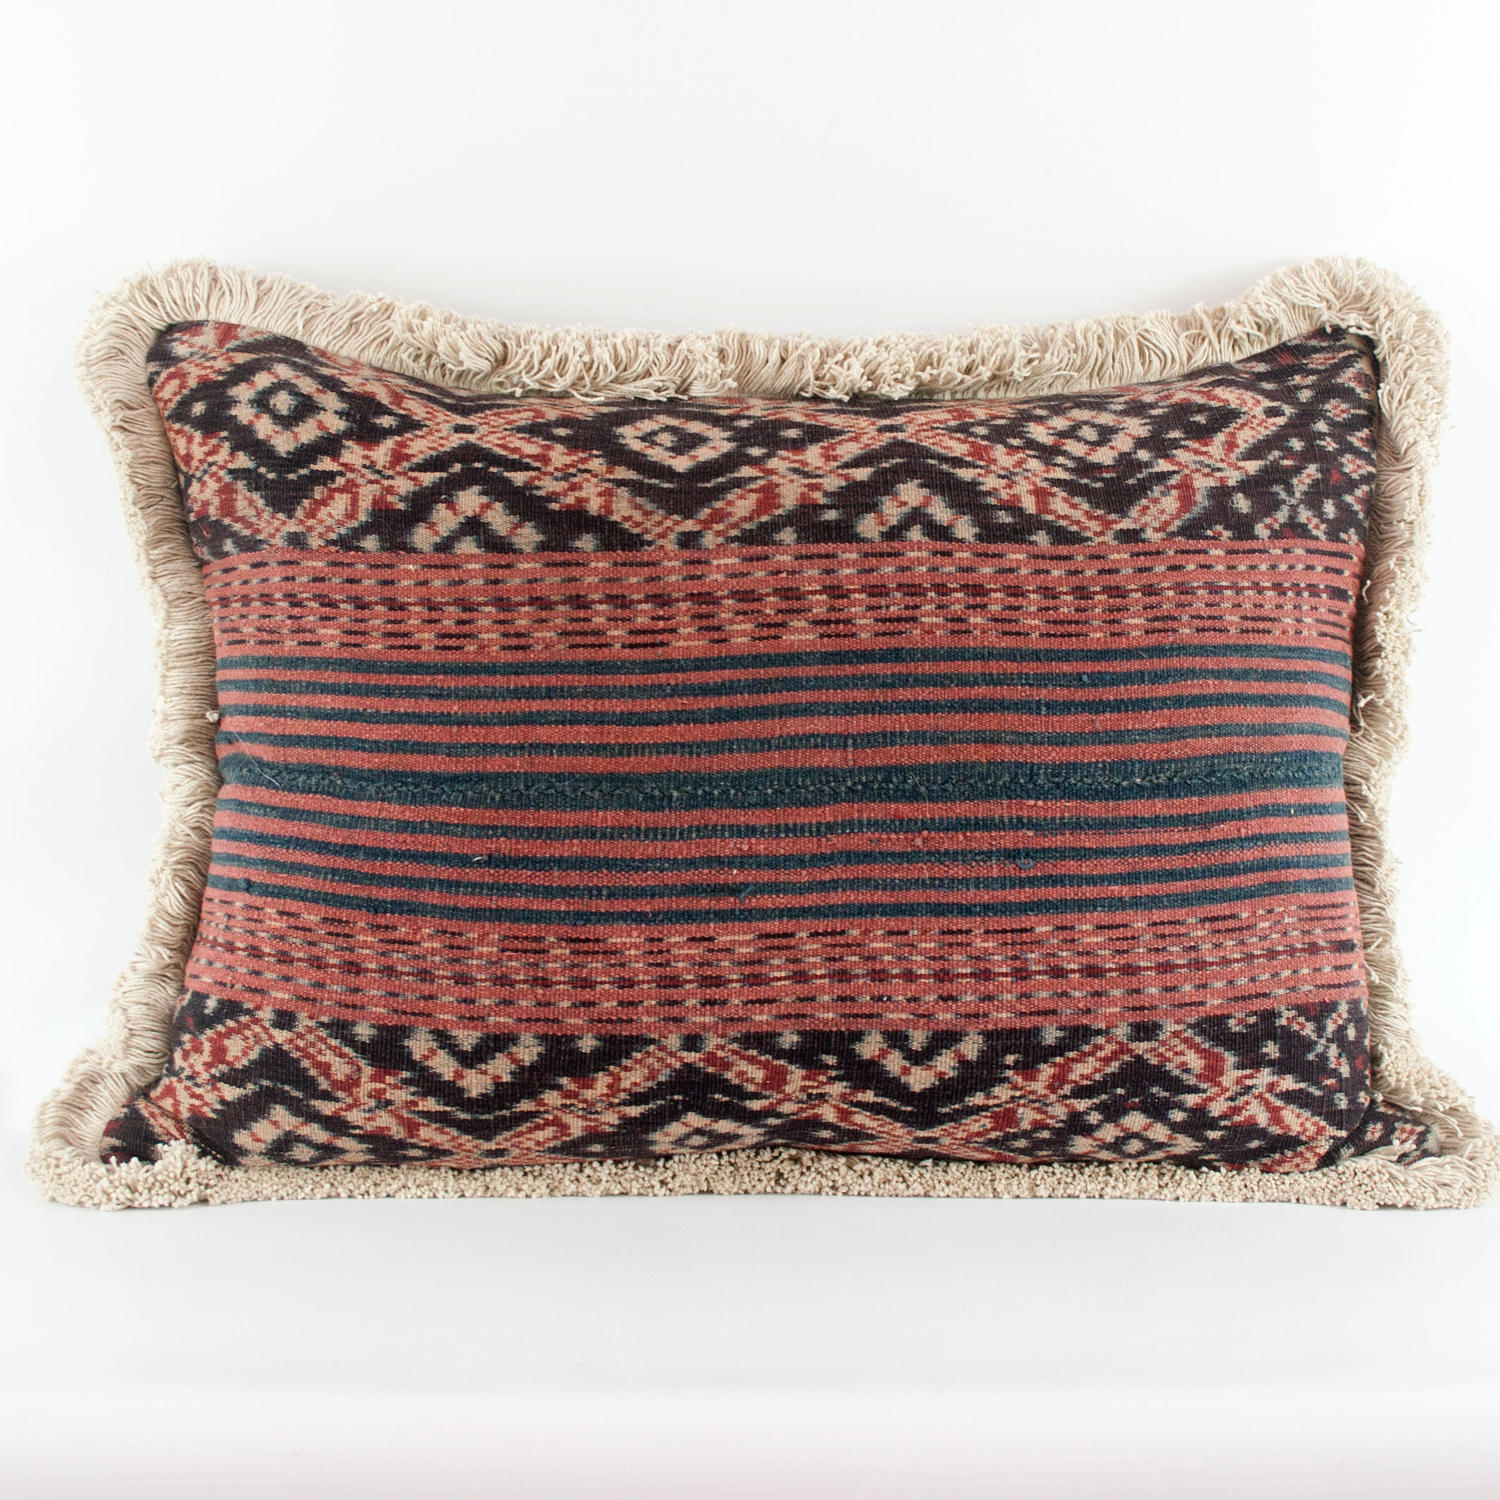 Ikat Cushions with Fringe